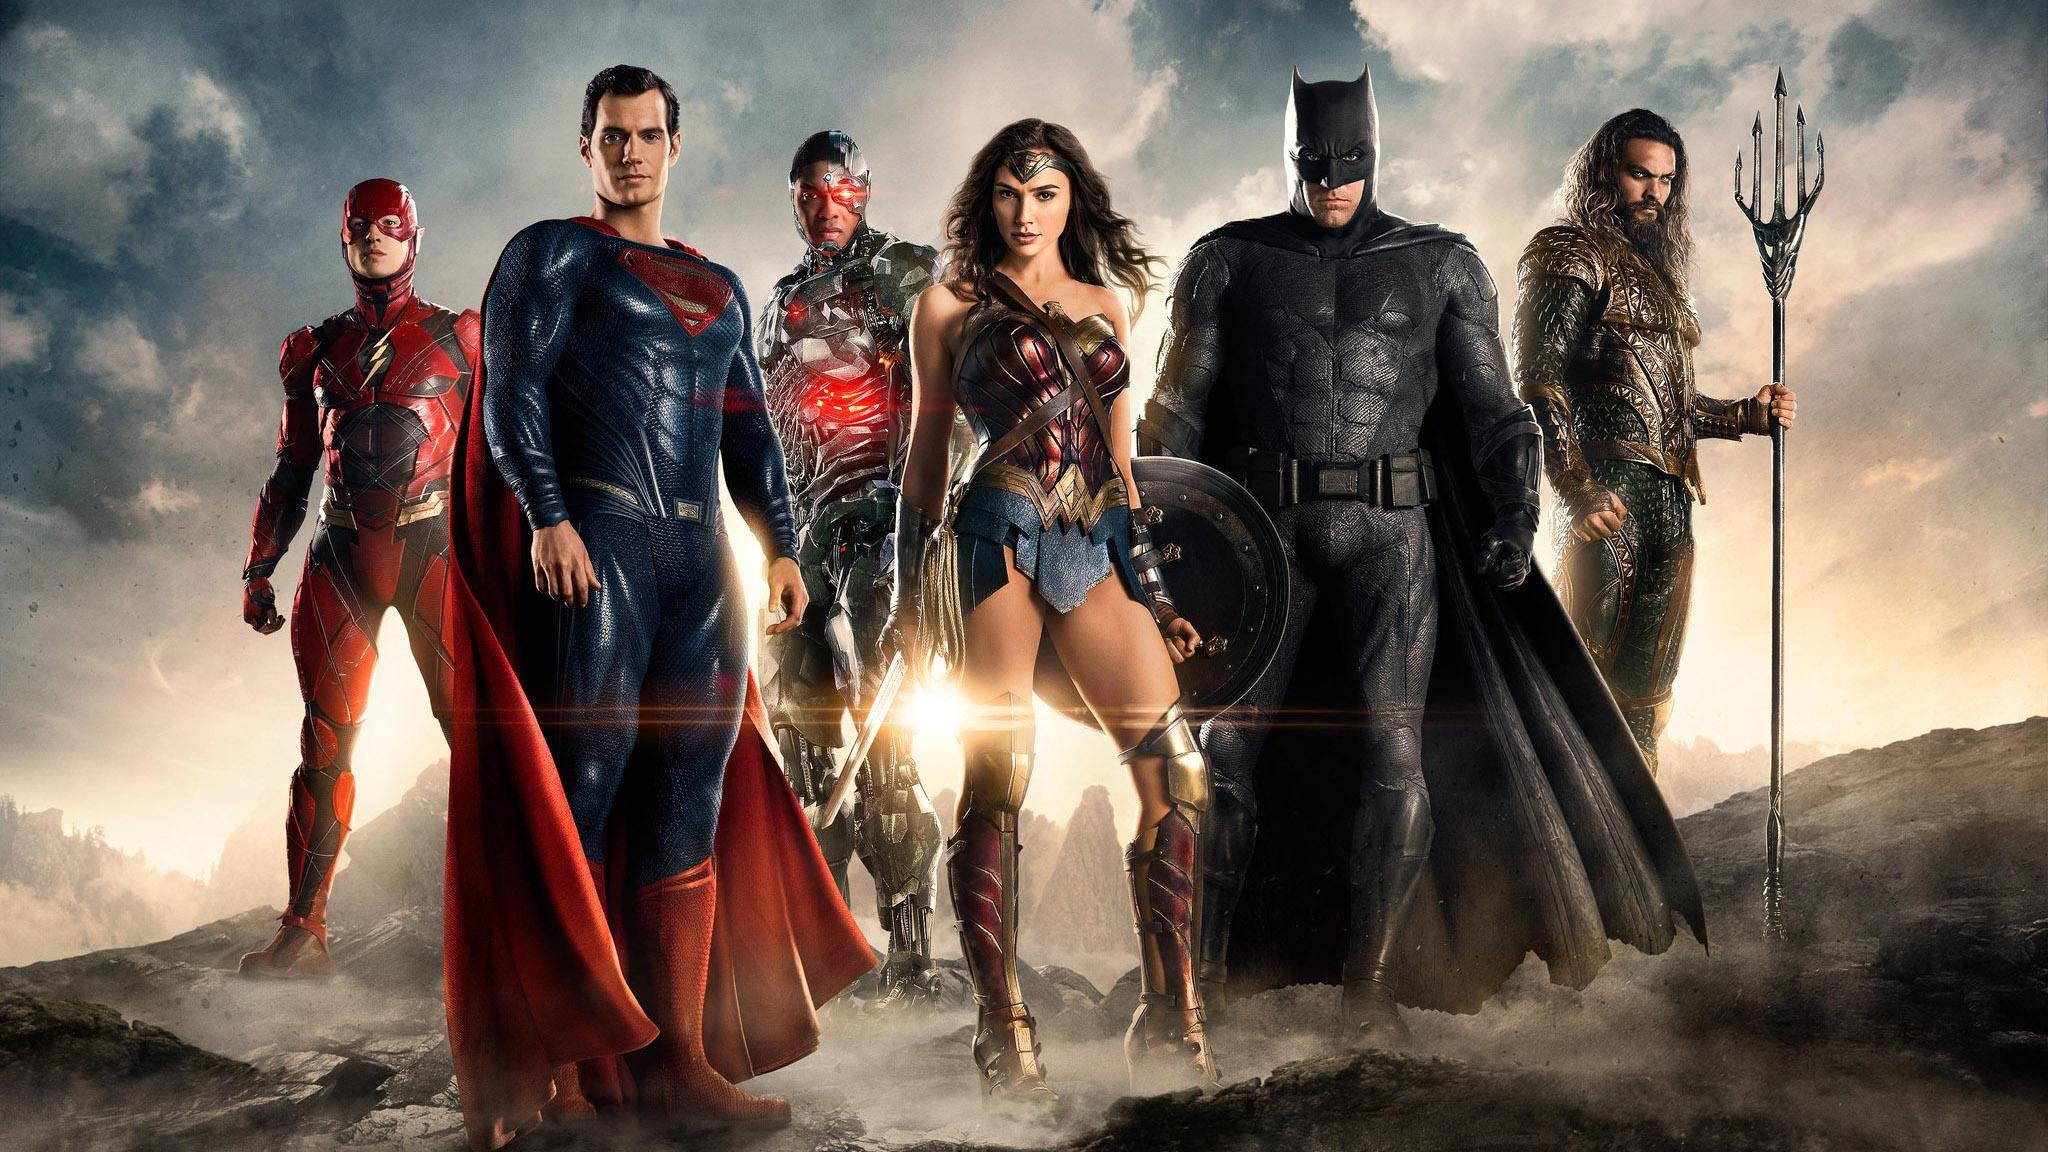 Ben Affleck and the 'Justice League' Assemble for the First Time ...